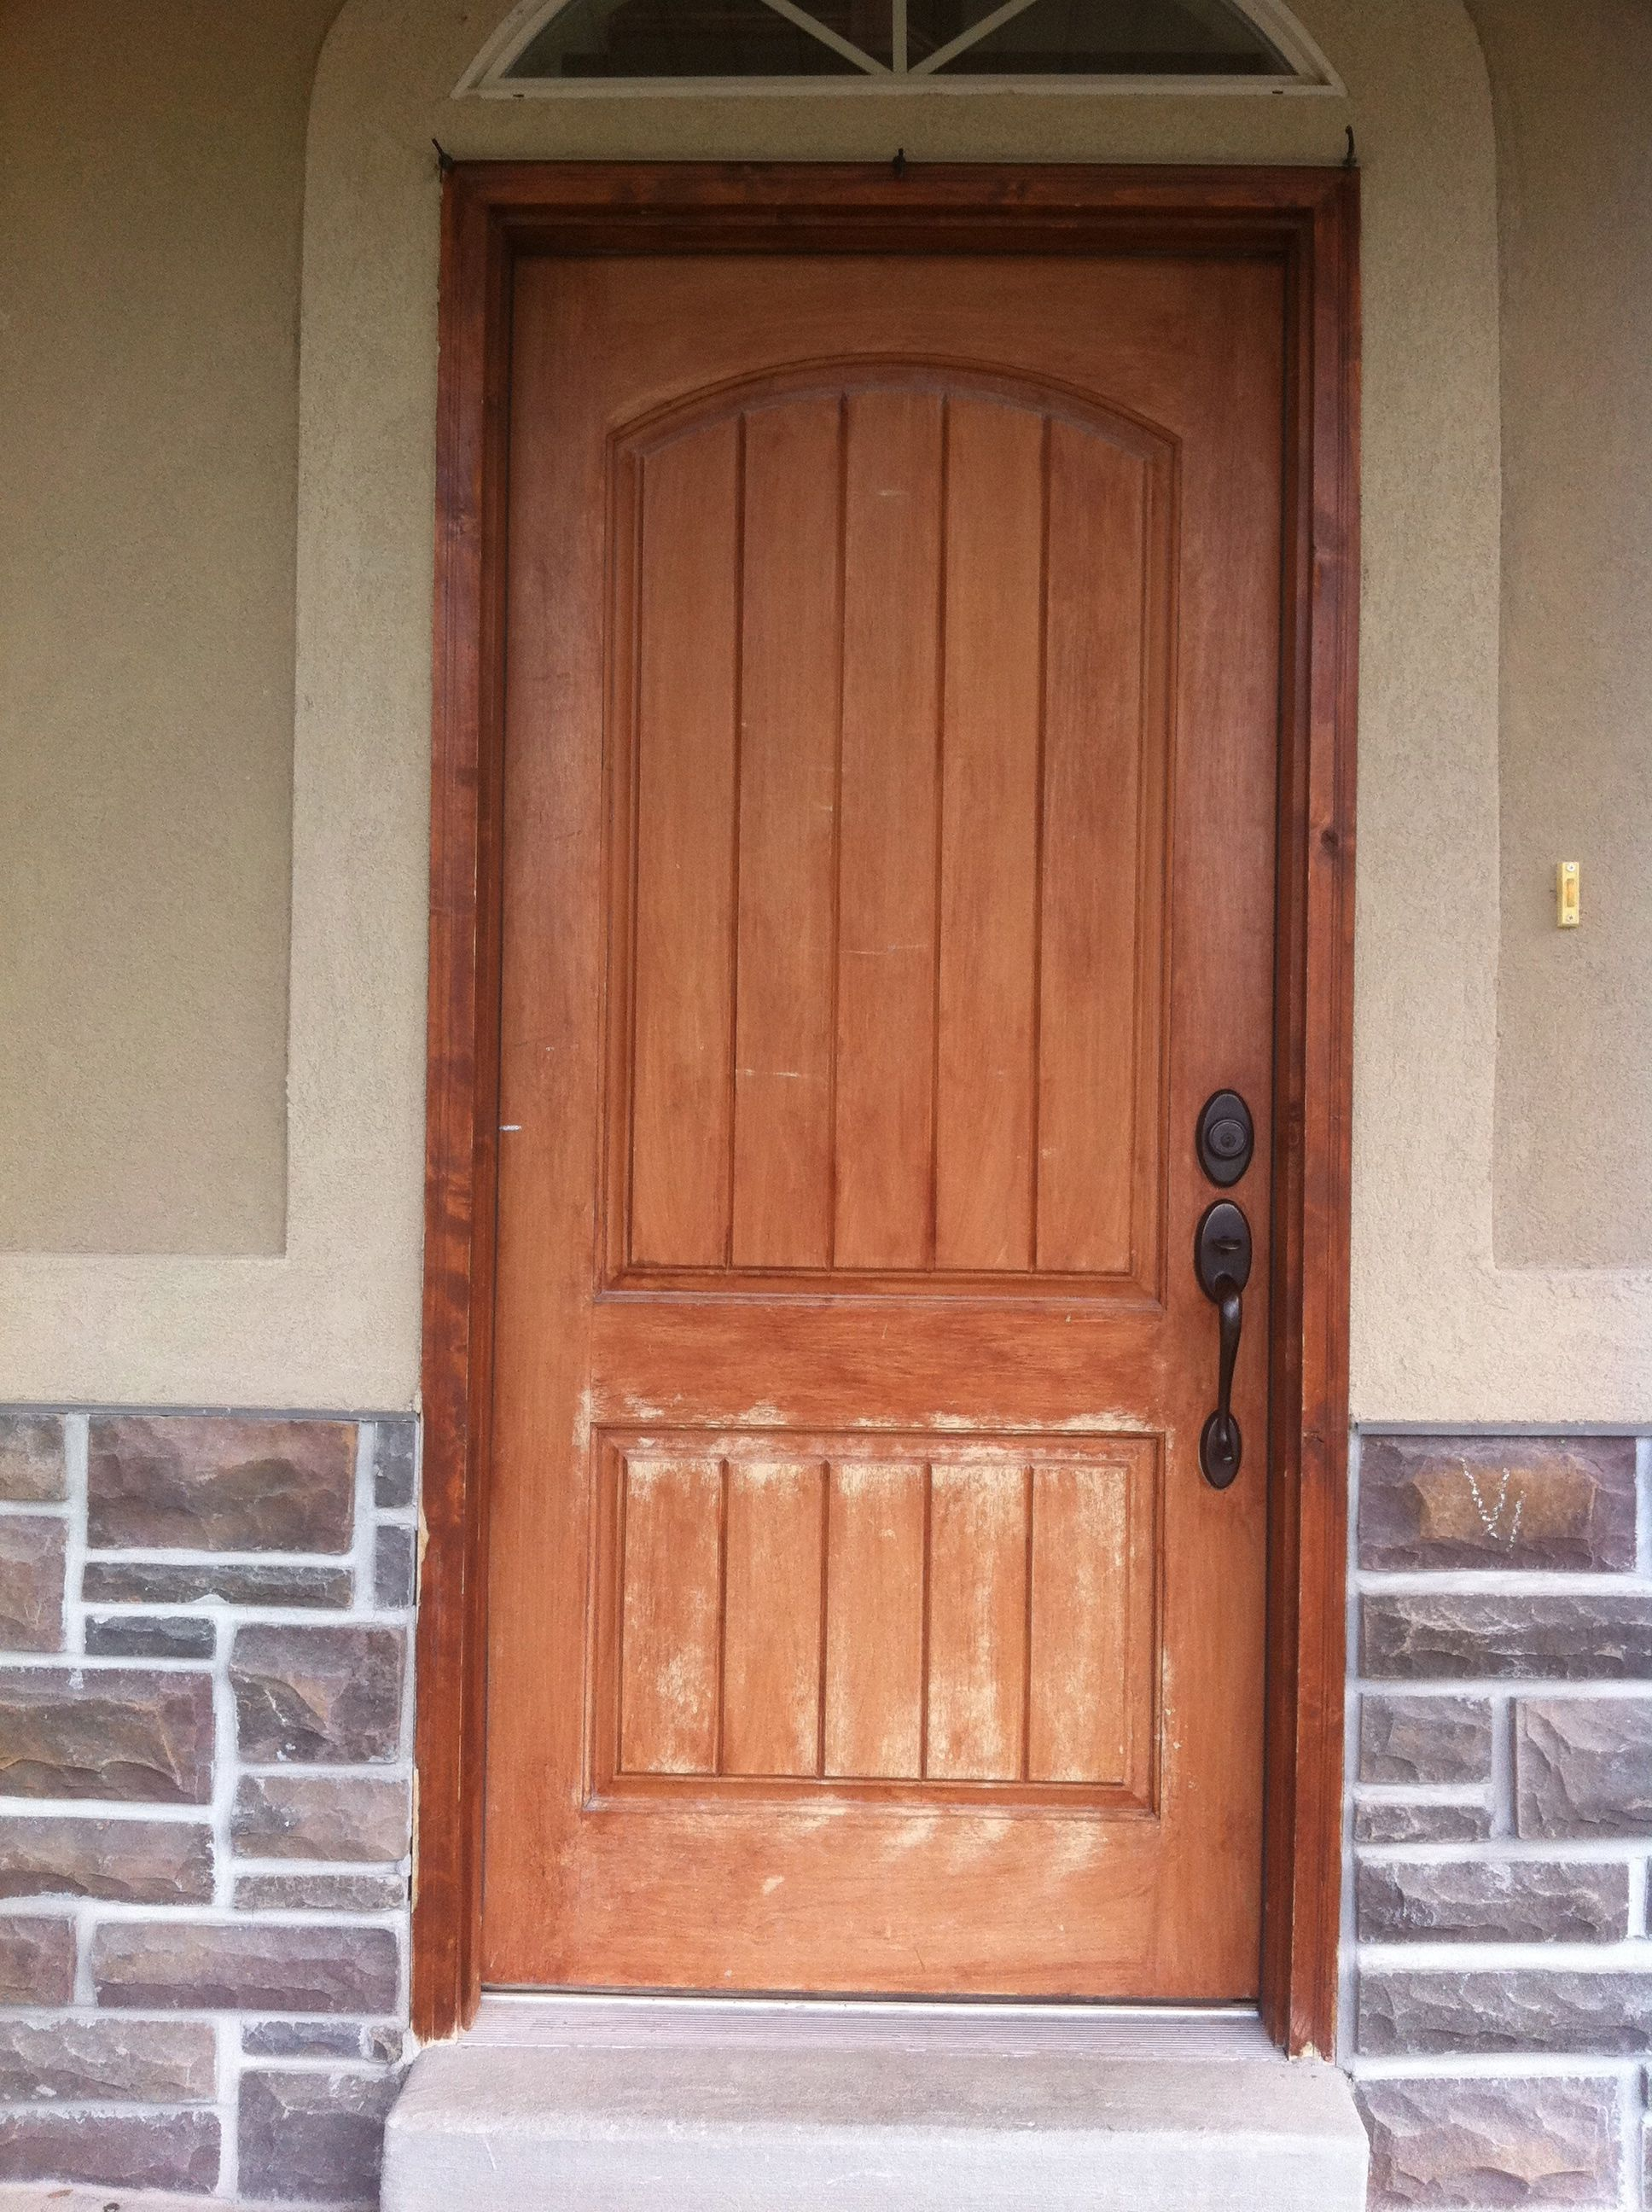 2592 3a2316 exterior fiberglass doors that have been wood grained or faux finished save image - Exterior Fiberglass Doors